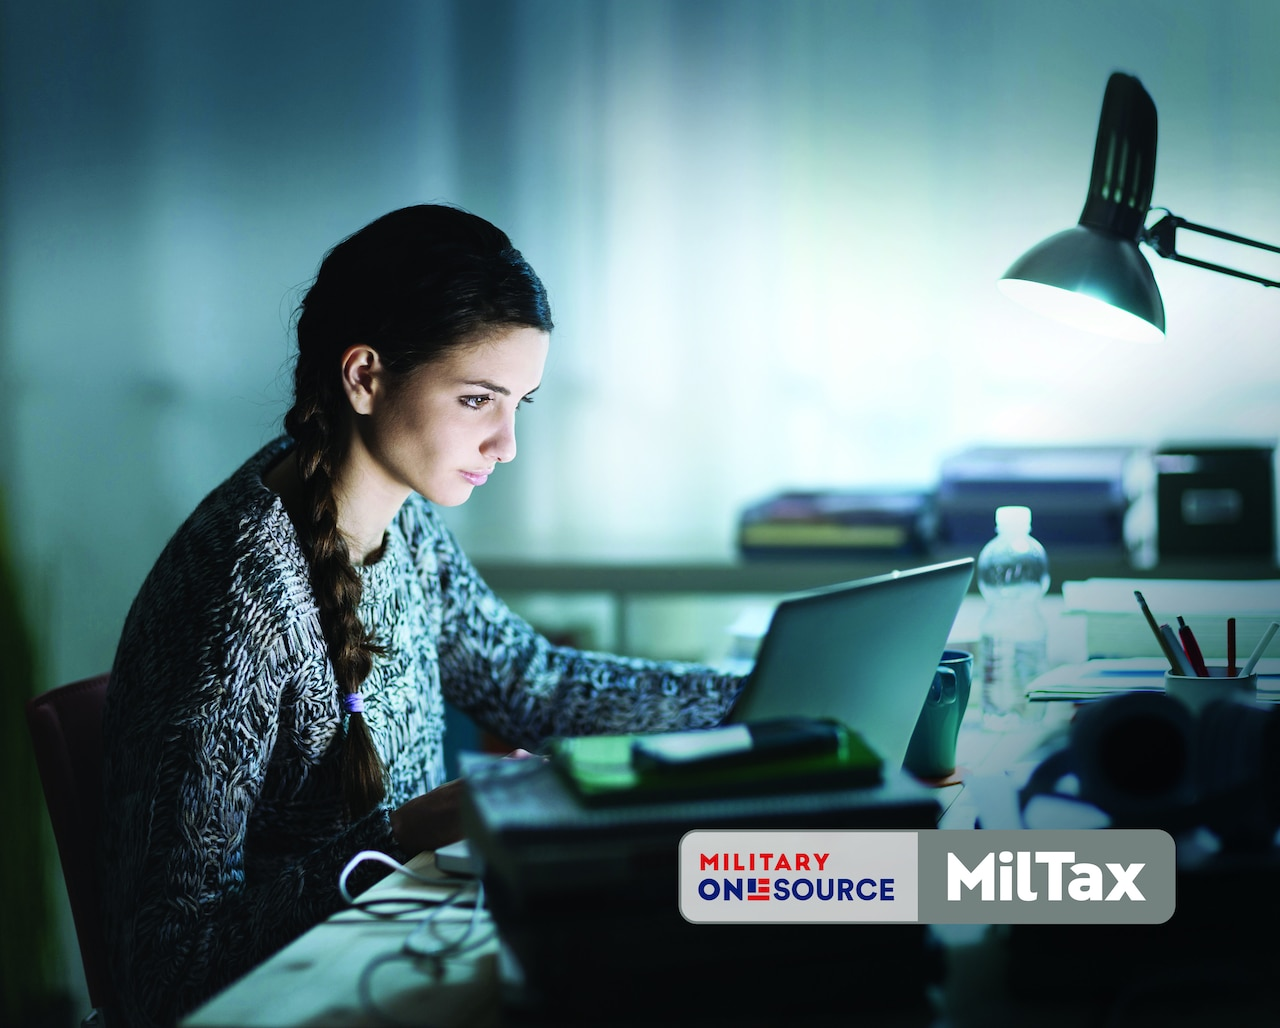 A person looks at a computer screen, The image has a Military Onesource MilTax logo superimposed on it.